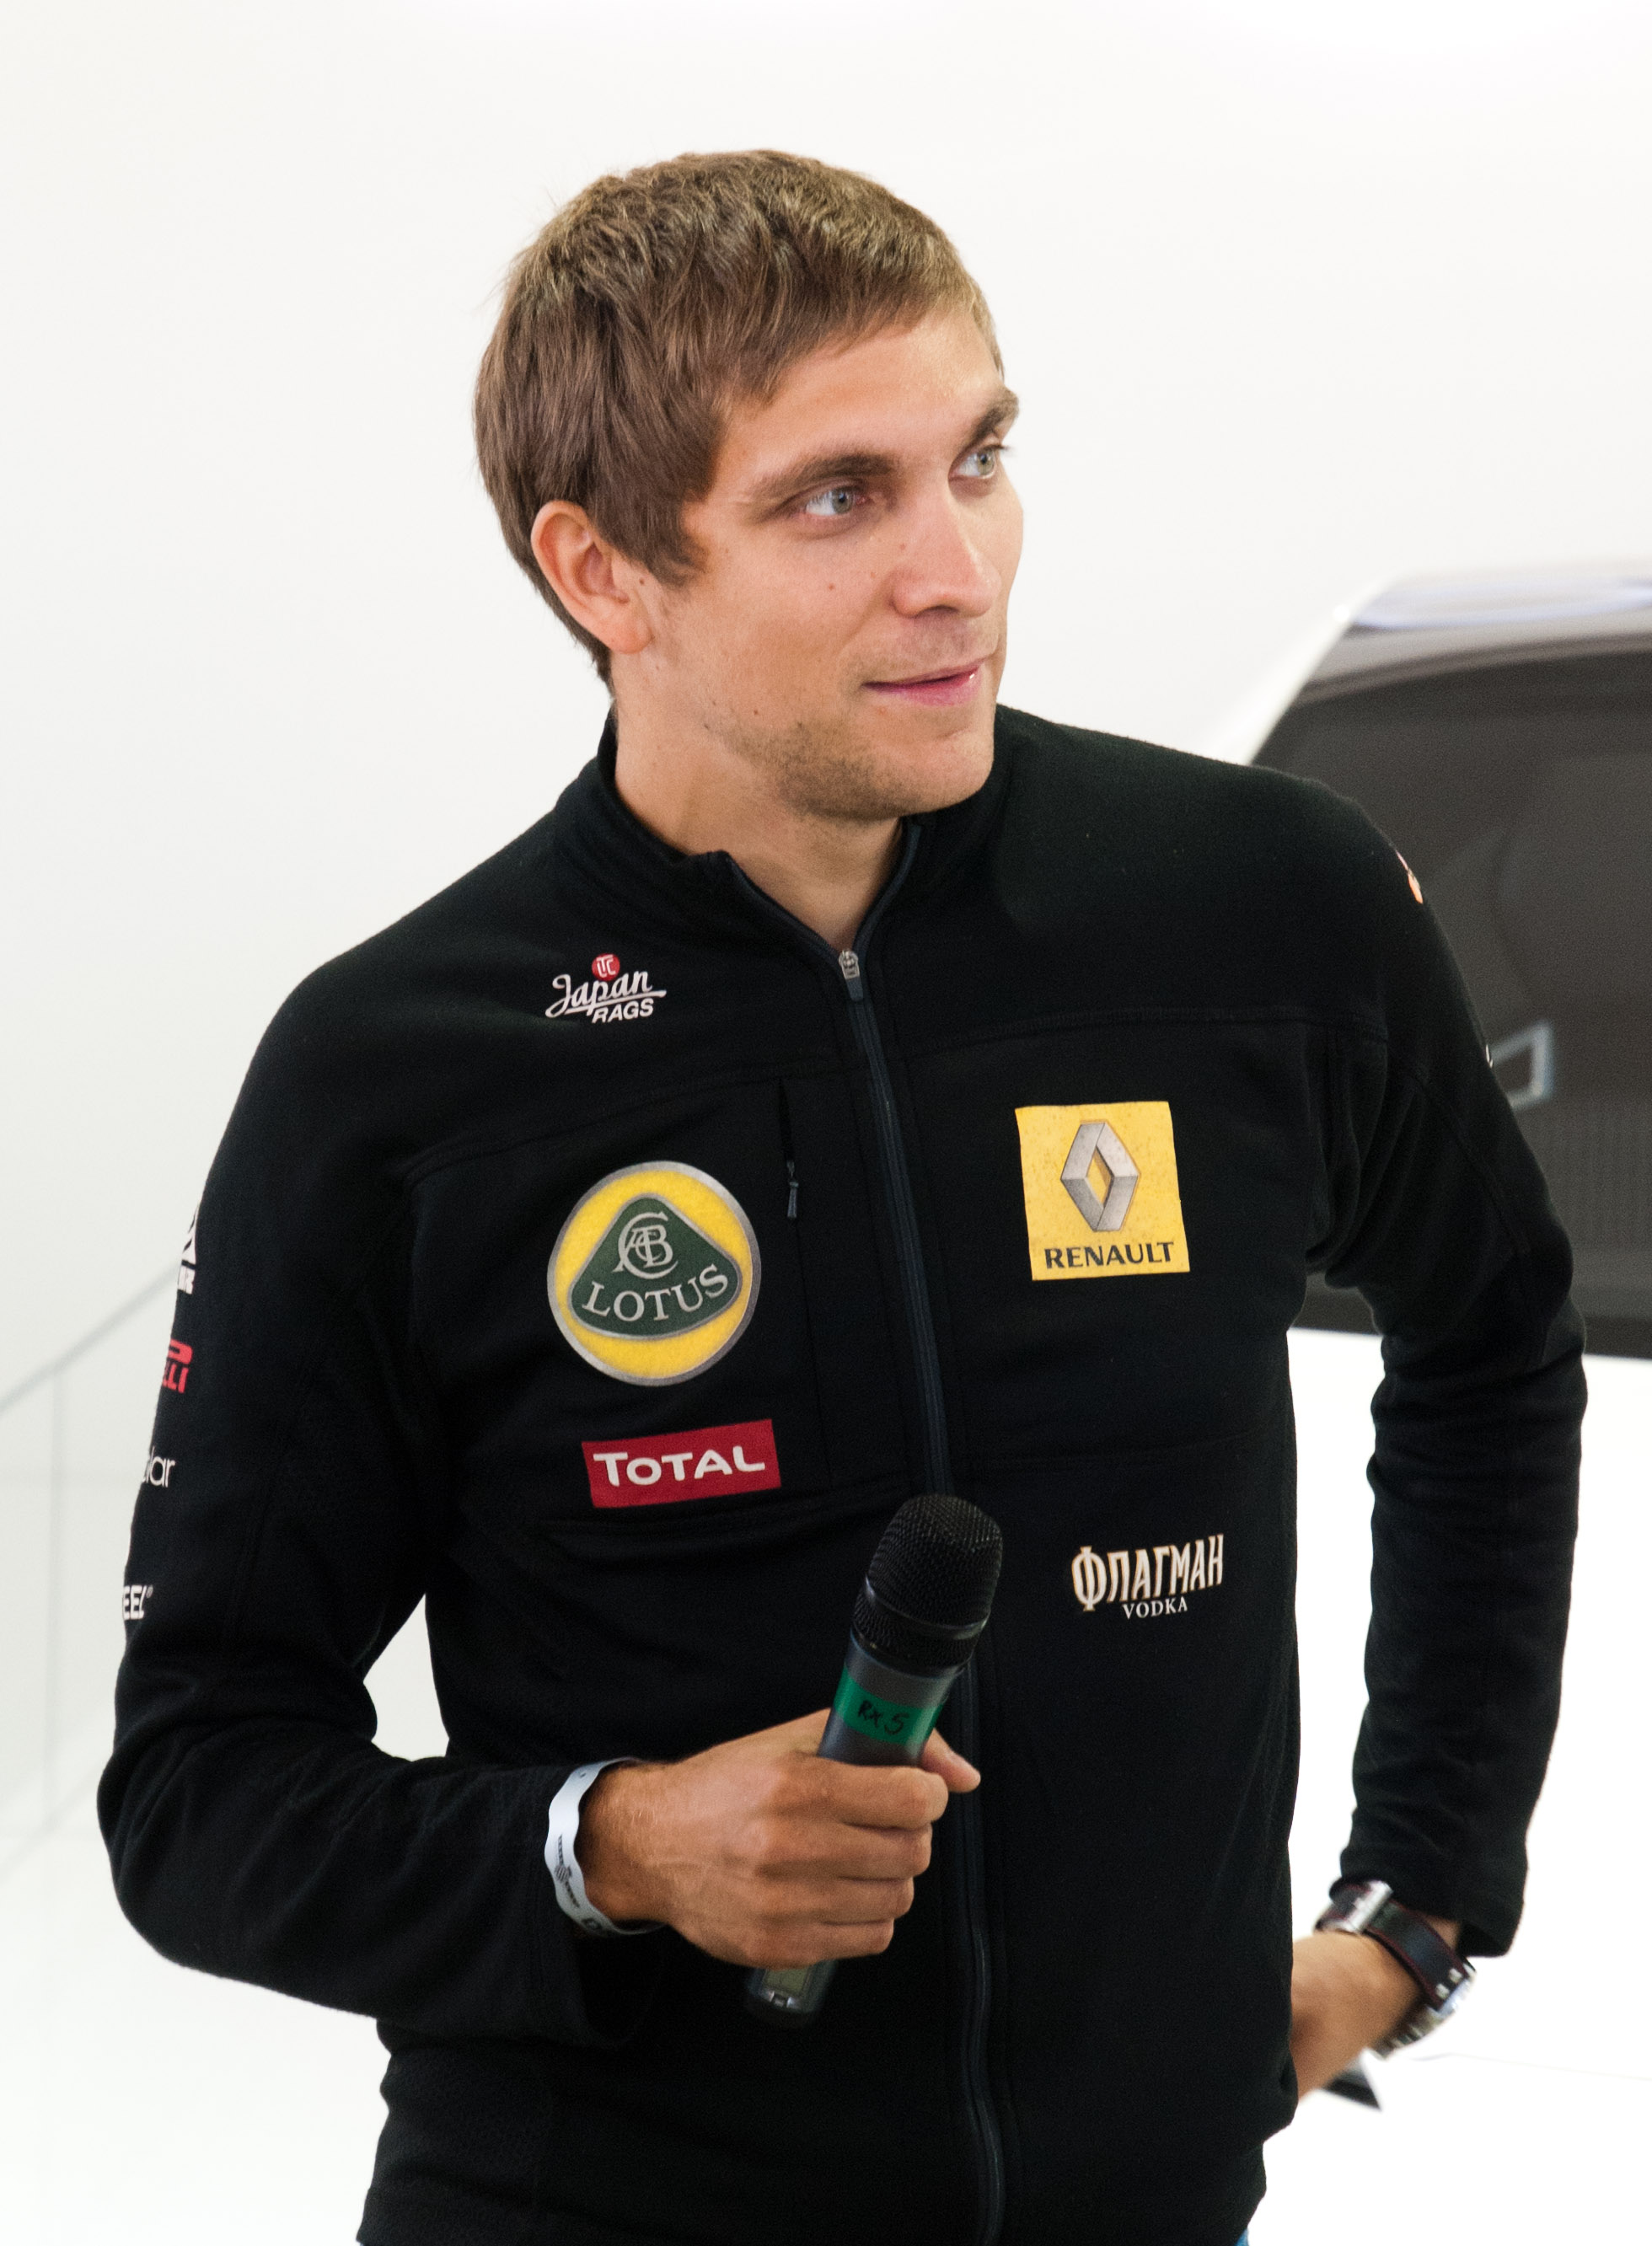 The 33-year old son of father (?) and mother(?) Vitaly Petrov in 2018 photo. Vitaly Petrov earned a  million dollar salary - leaving the net worth at 0.3 million in 2018